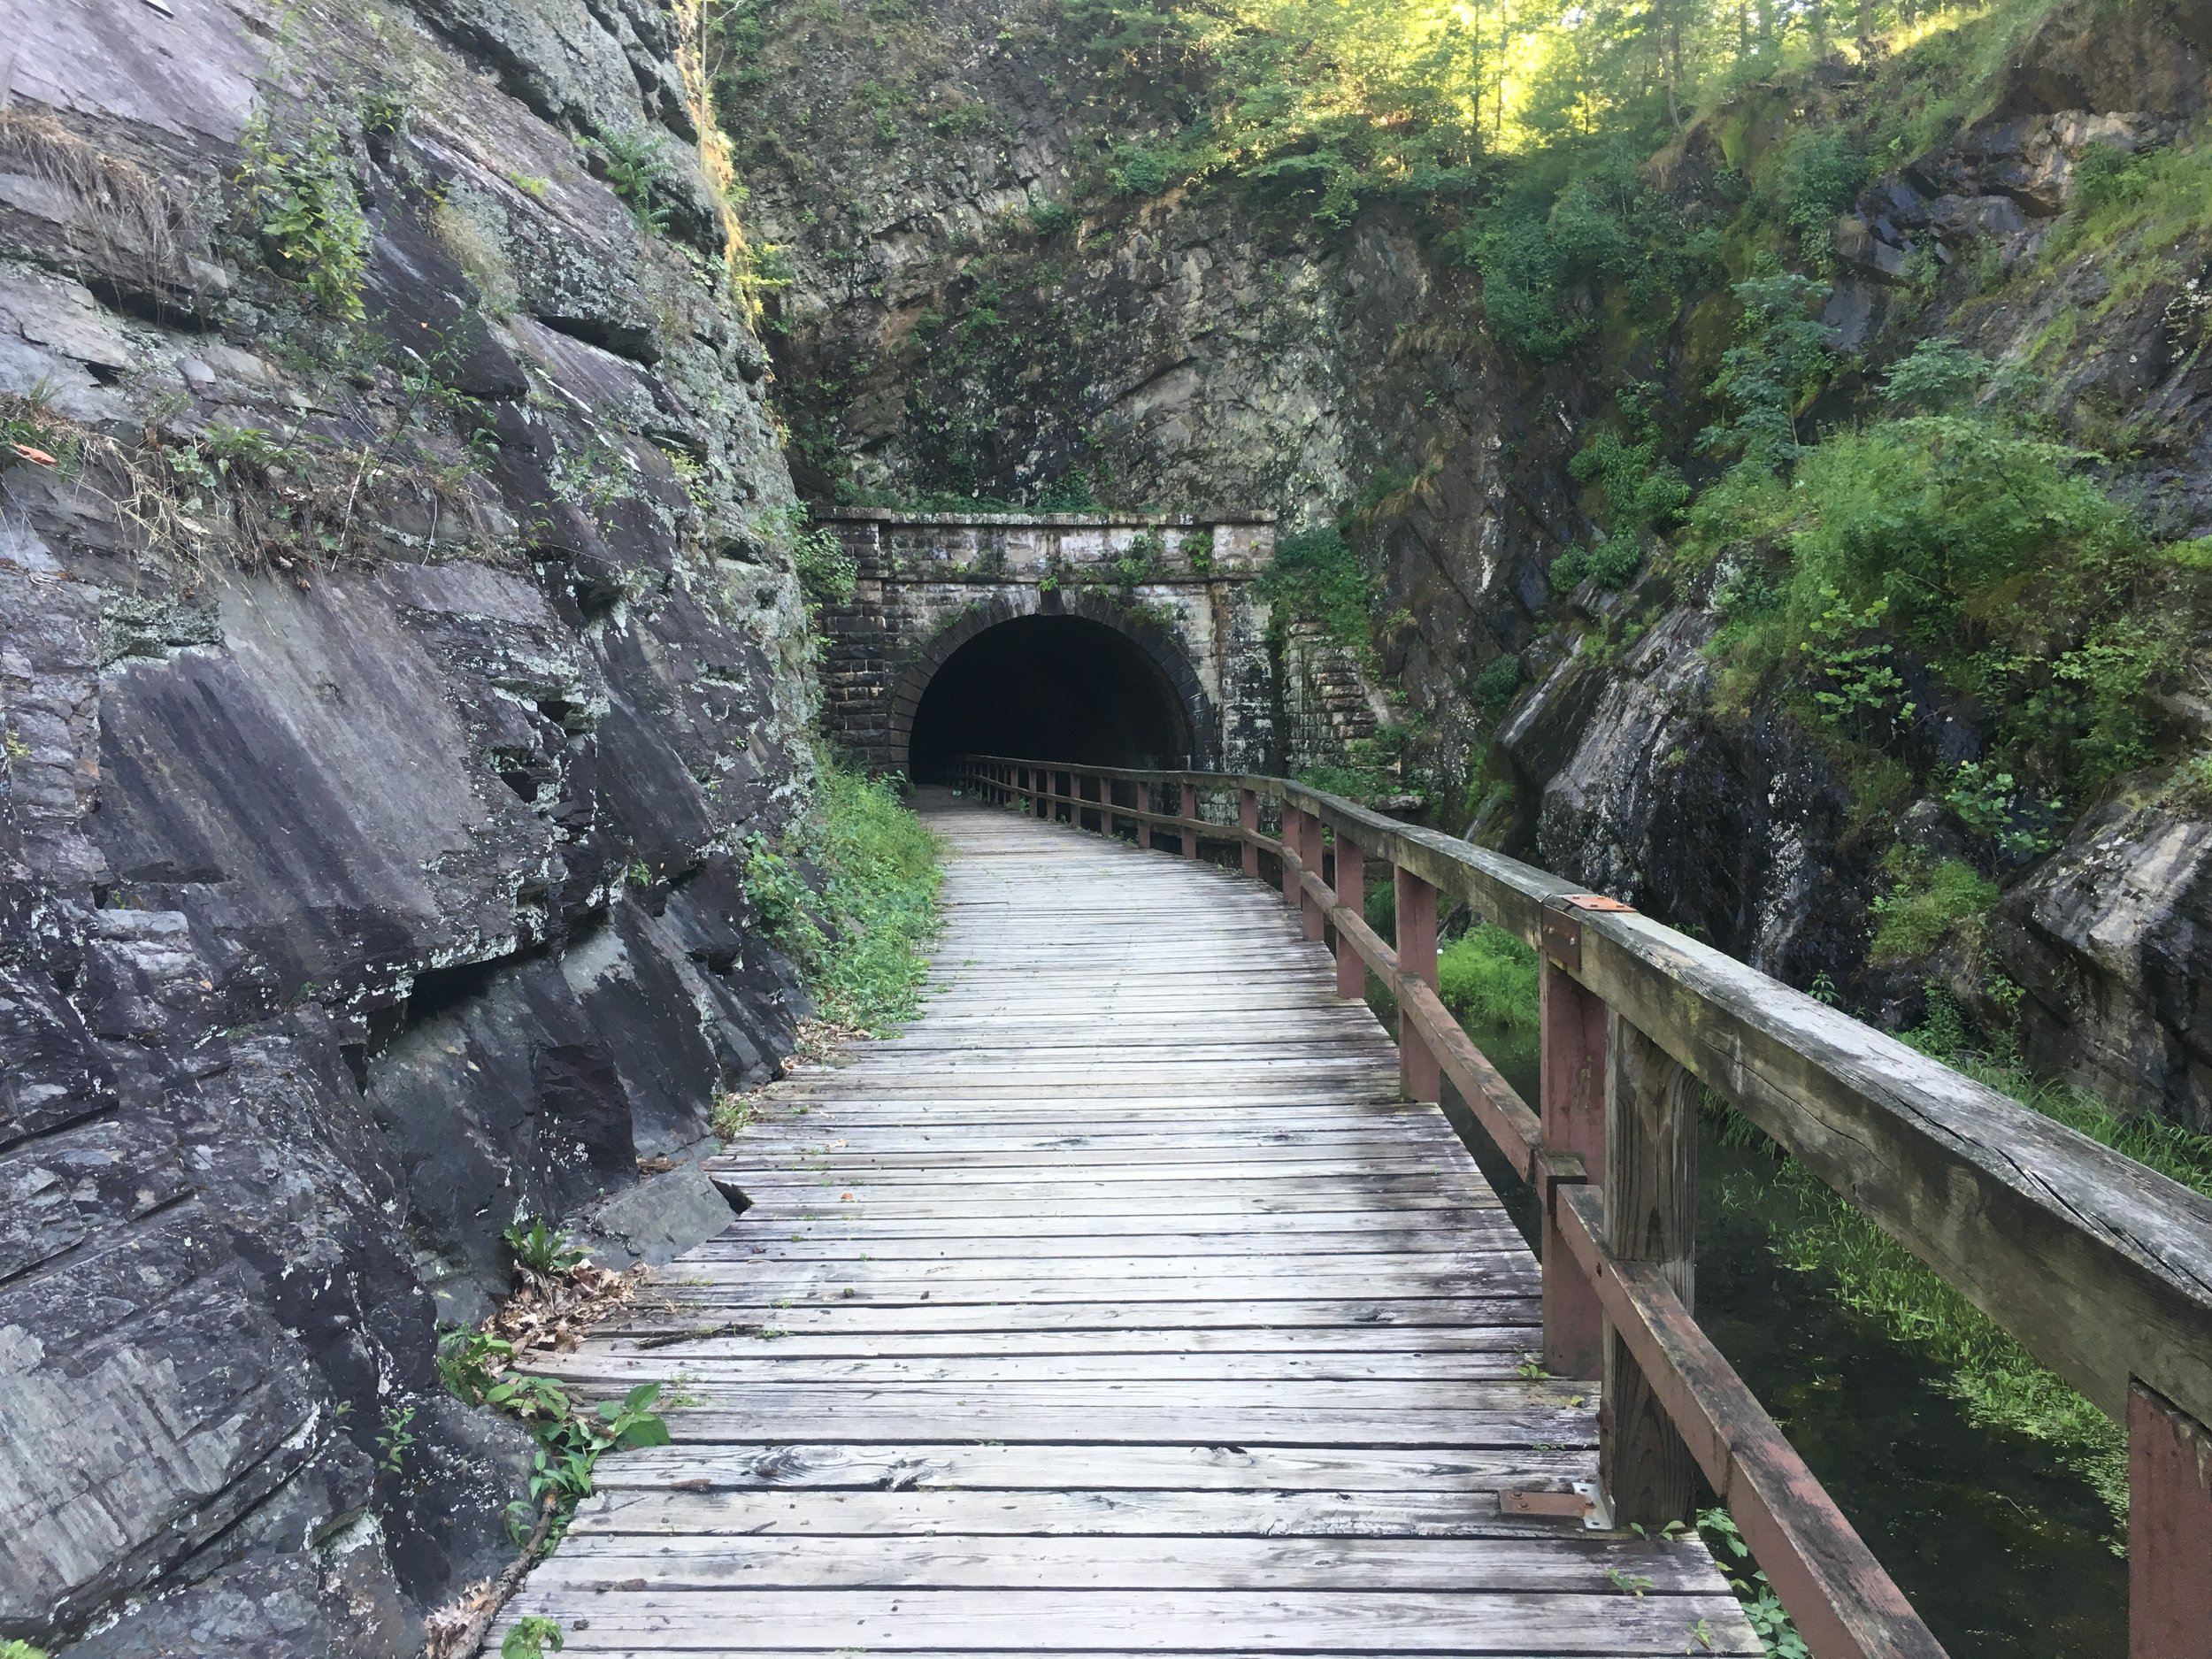 Entrance to the Paw Paw Tunnel